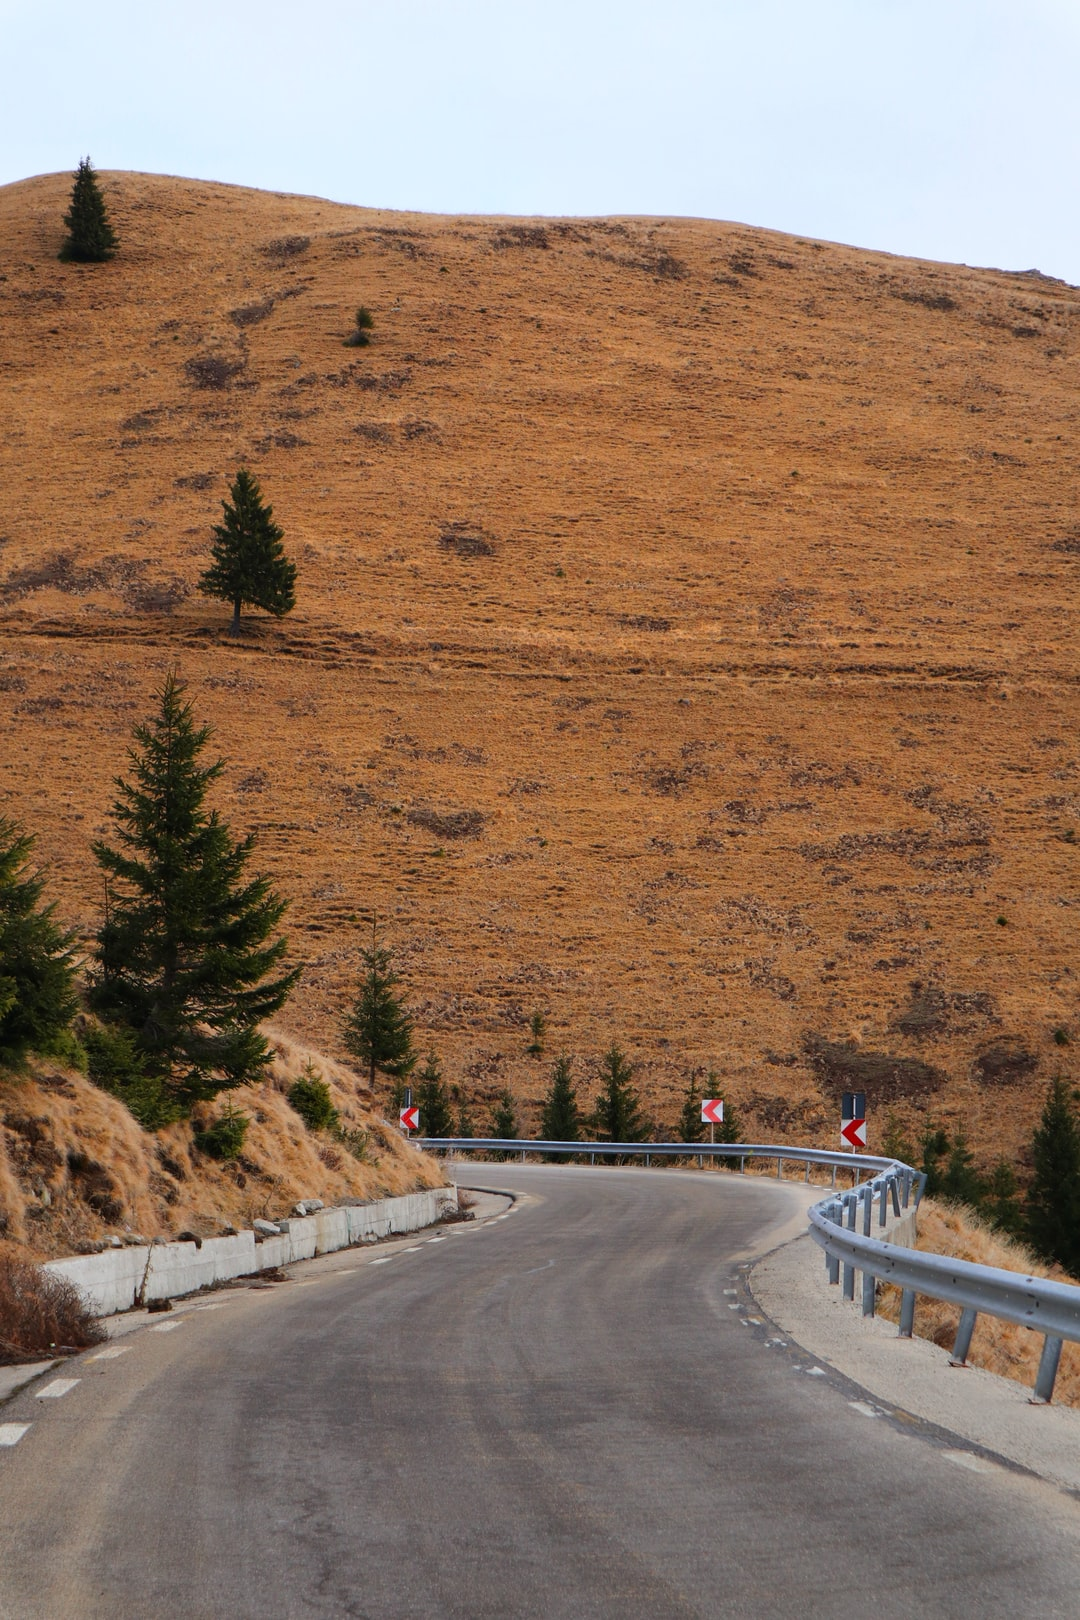 A winding road over the splendid Carpathians in Romania, overseen by brown hills and a few pine trees.